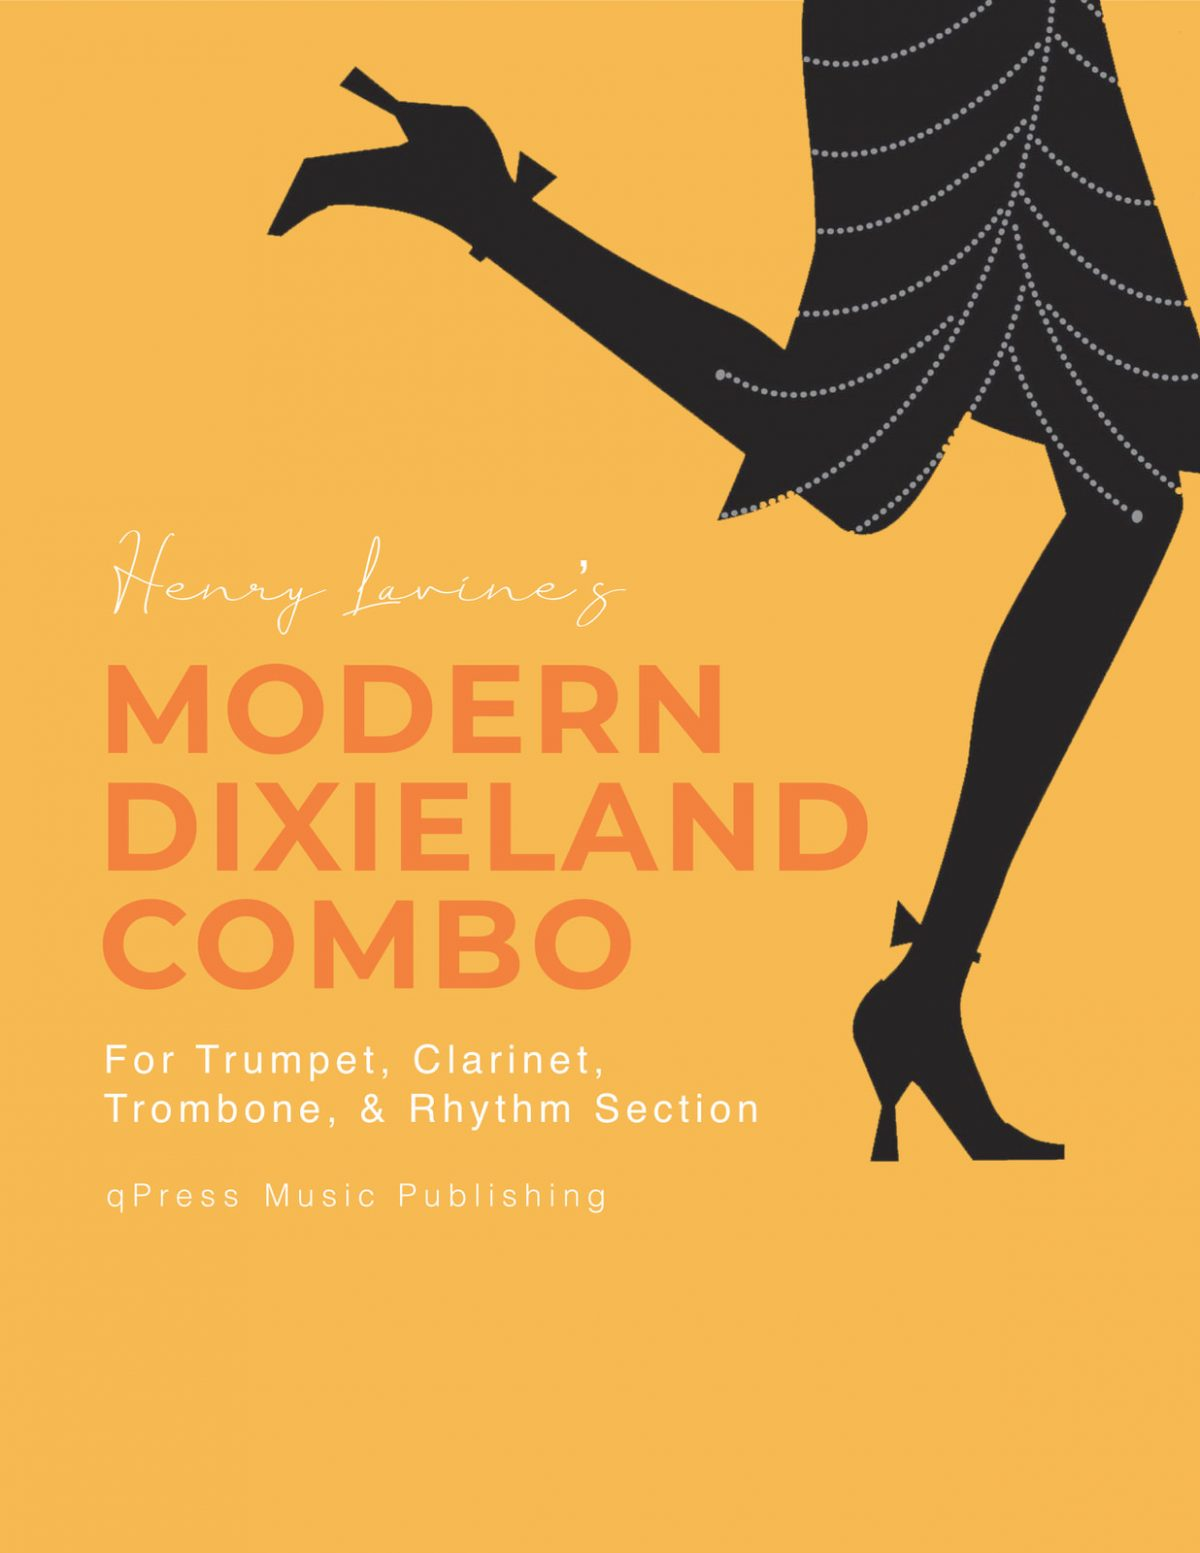 Dixieland Combo Featured